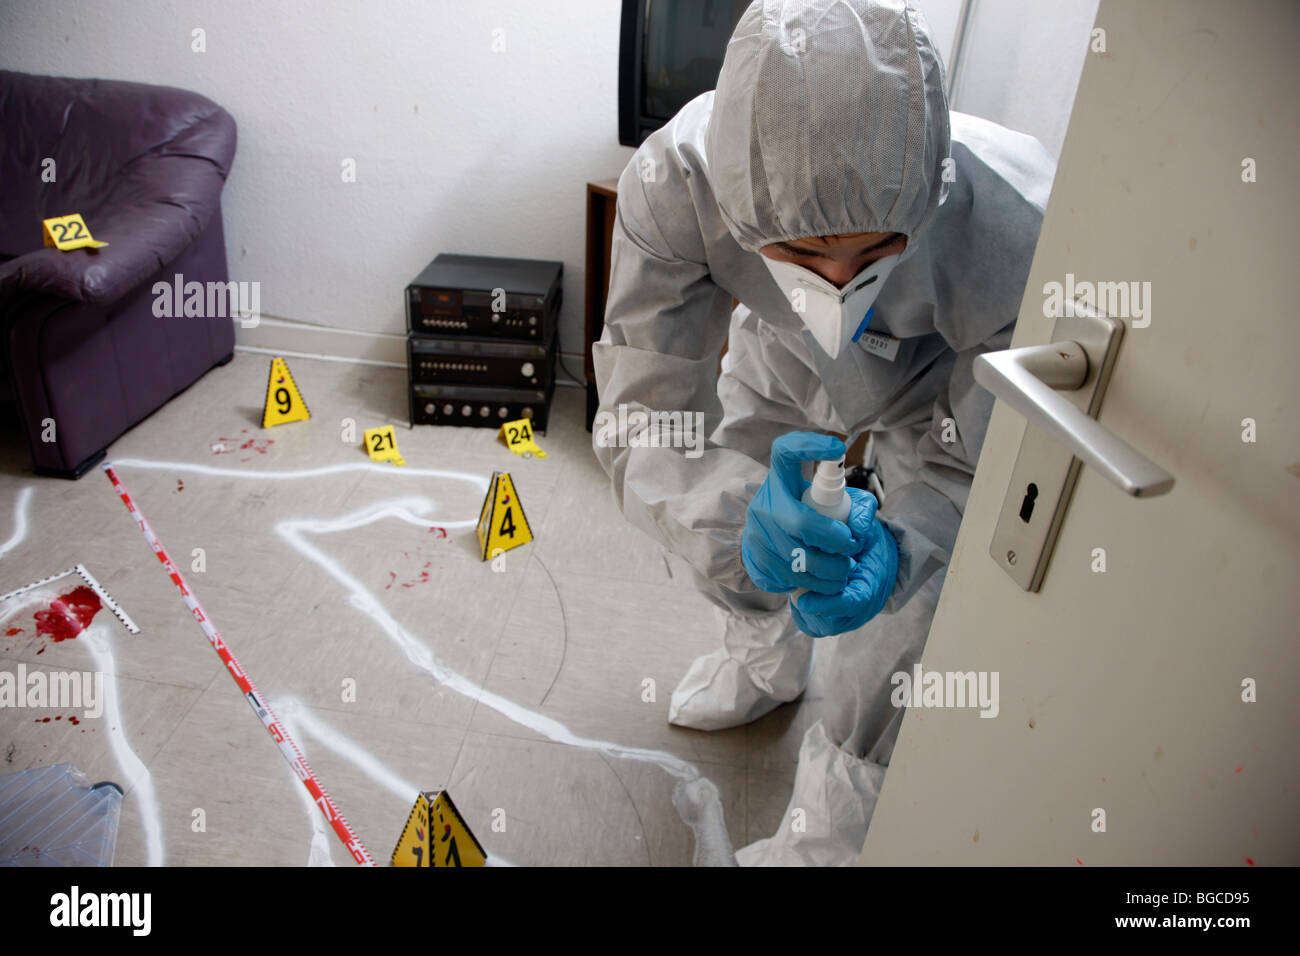 an analysis of forensics and crime scene investigation in law enforcement Crime scene investigators are the foundation for every criminal investigation the admissibility and persuasiveness of evidence in court, and in turn, the success of a case, is largely dependent upon the evidence being properly collected, recorded, and handled for future analysis by investigators and forensic analysts in the lab.